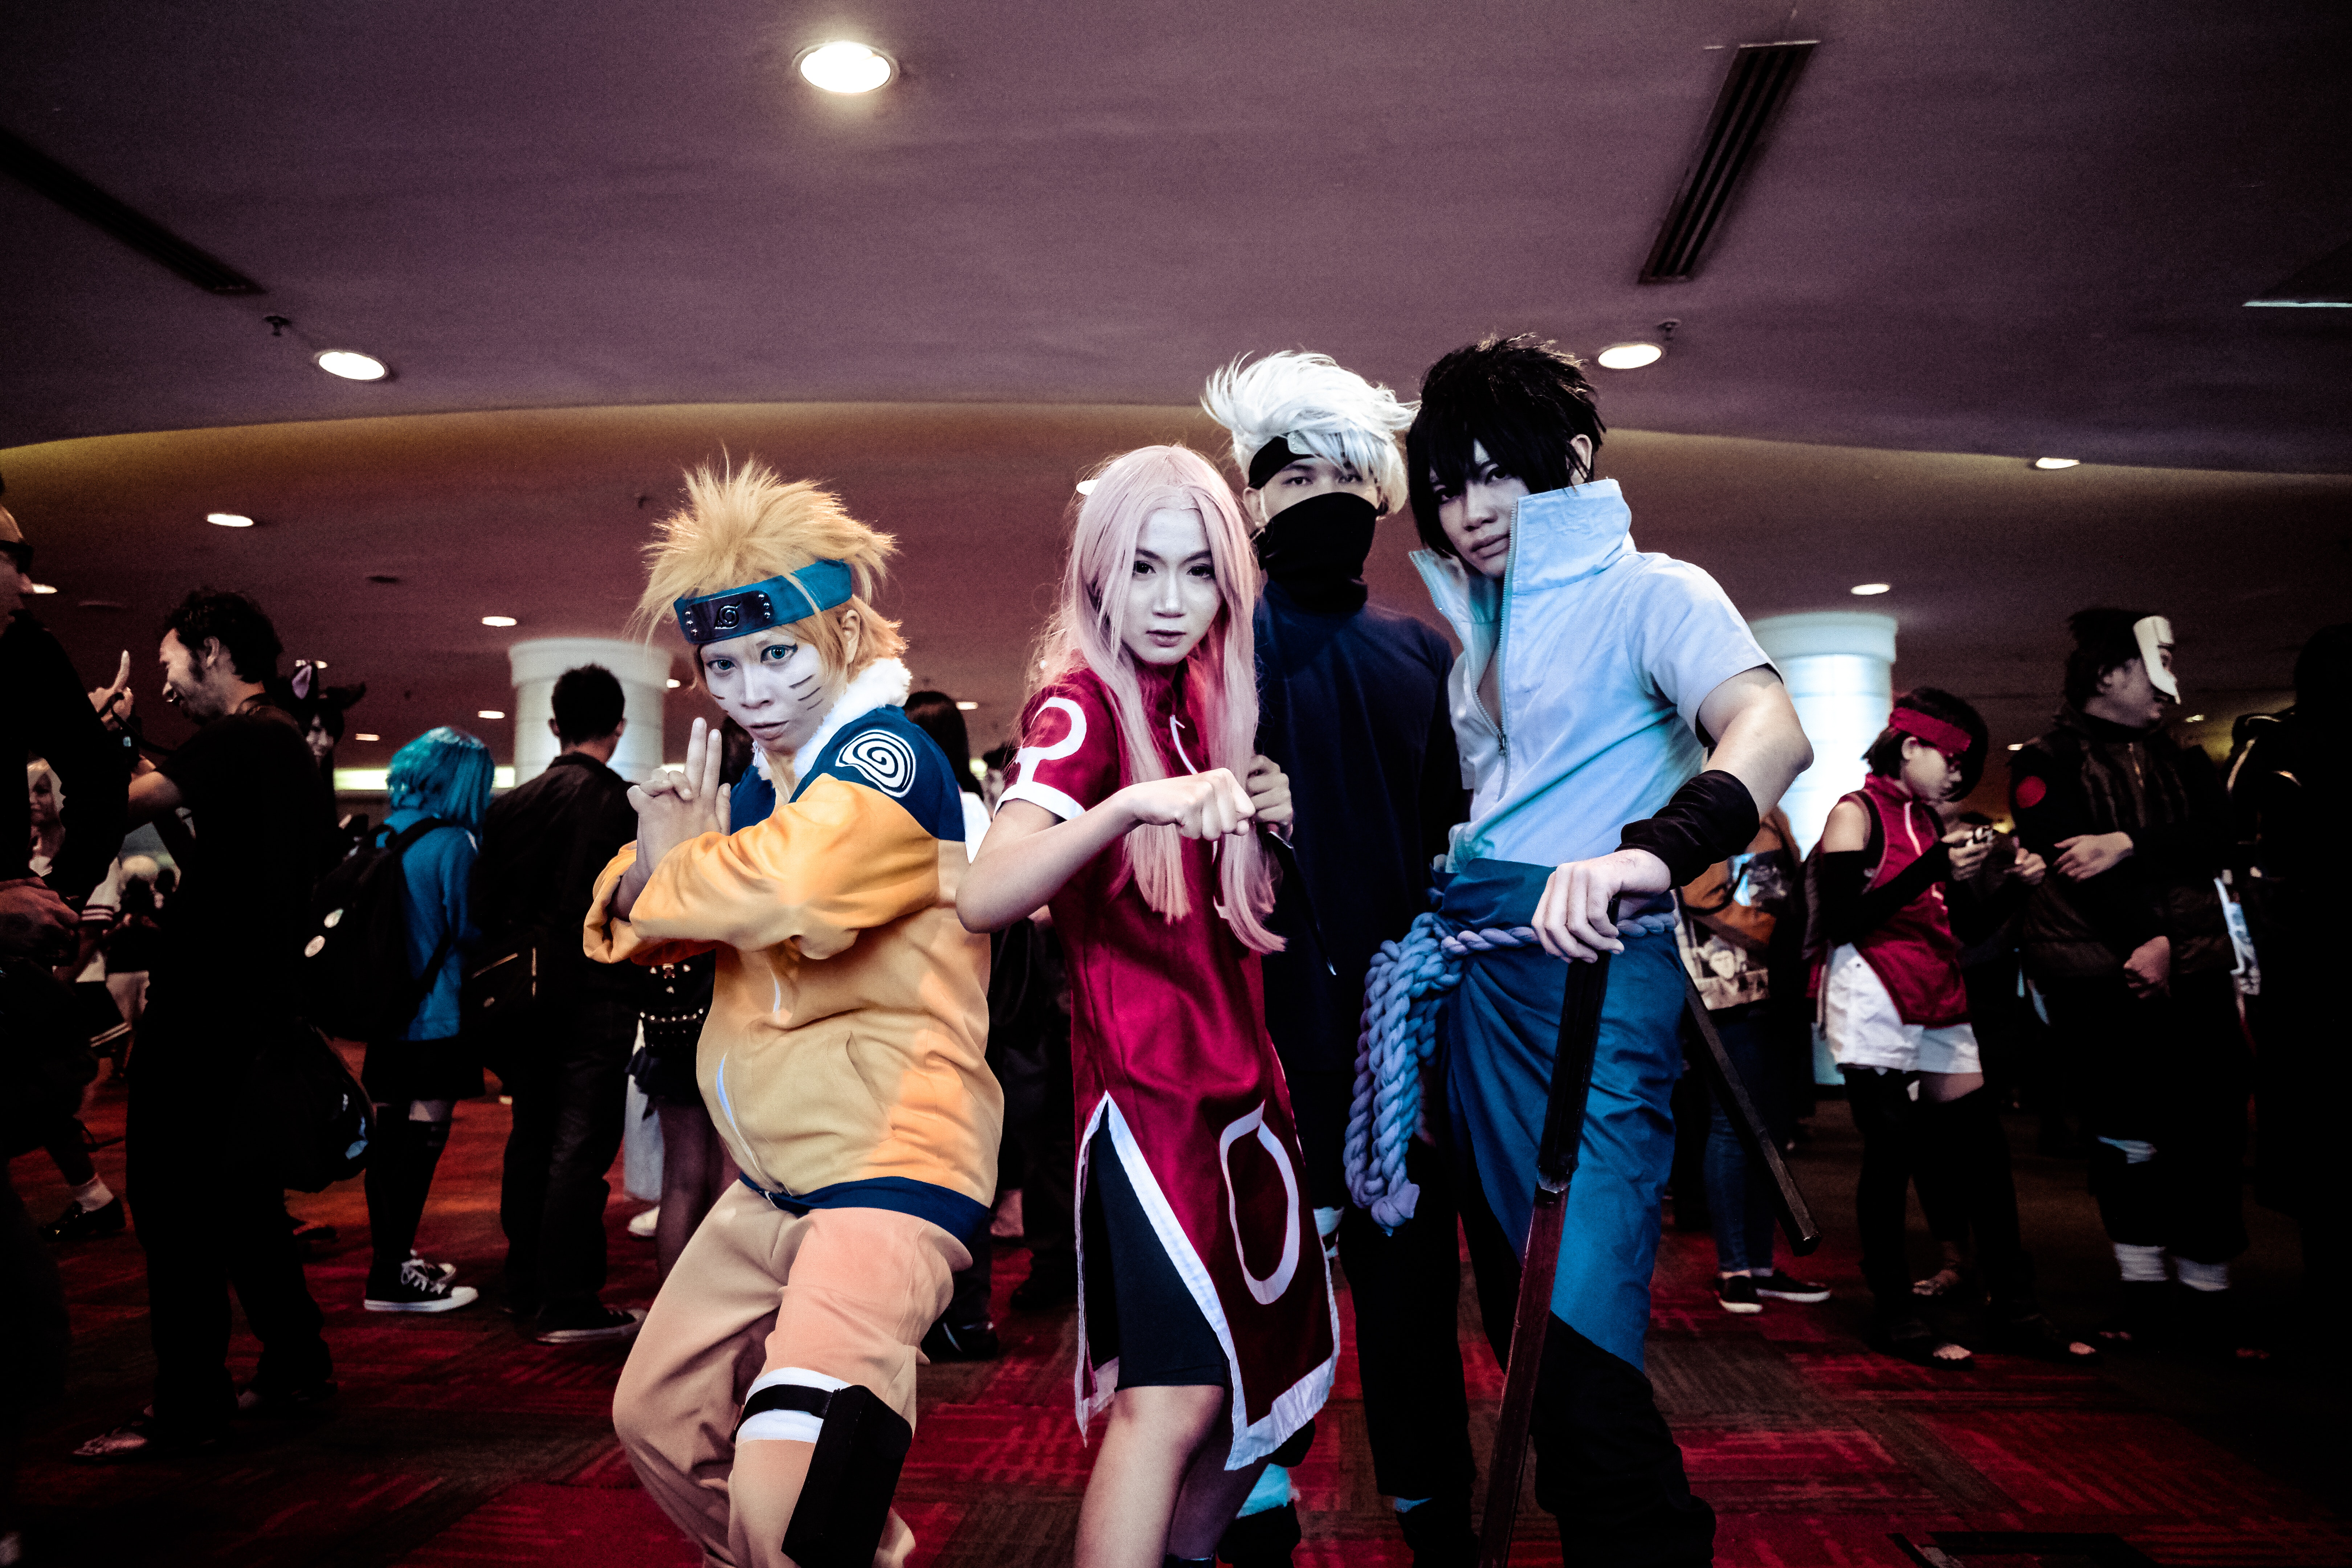 celebration-cosplay-costumes-65767.jpg